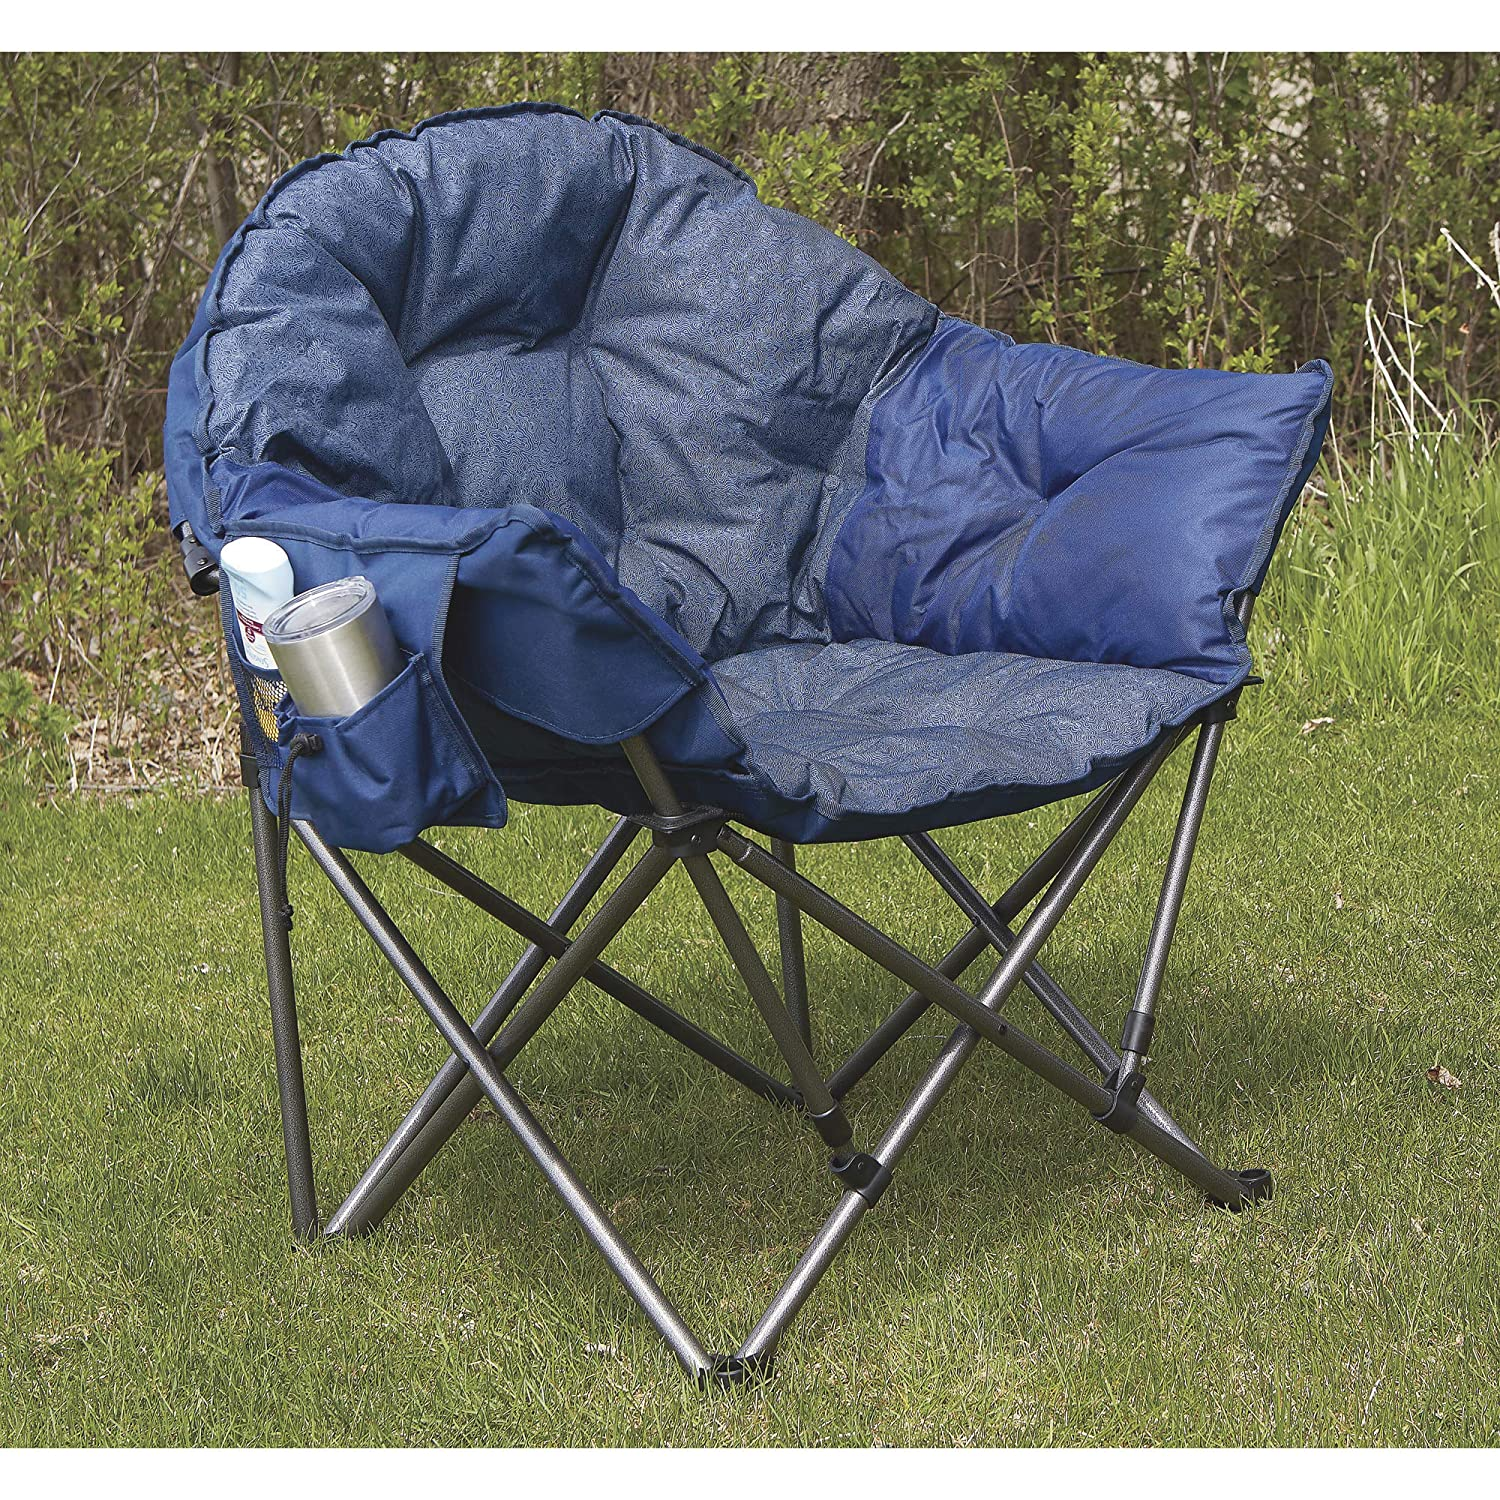 Admirable Westfield Outdoor Portal Oversized Folding Club Camp Chair 500 Lb Capacity Alphanode Cool Chair Designs And Ideas Alphanodeonline